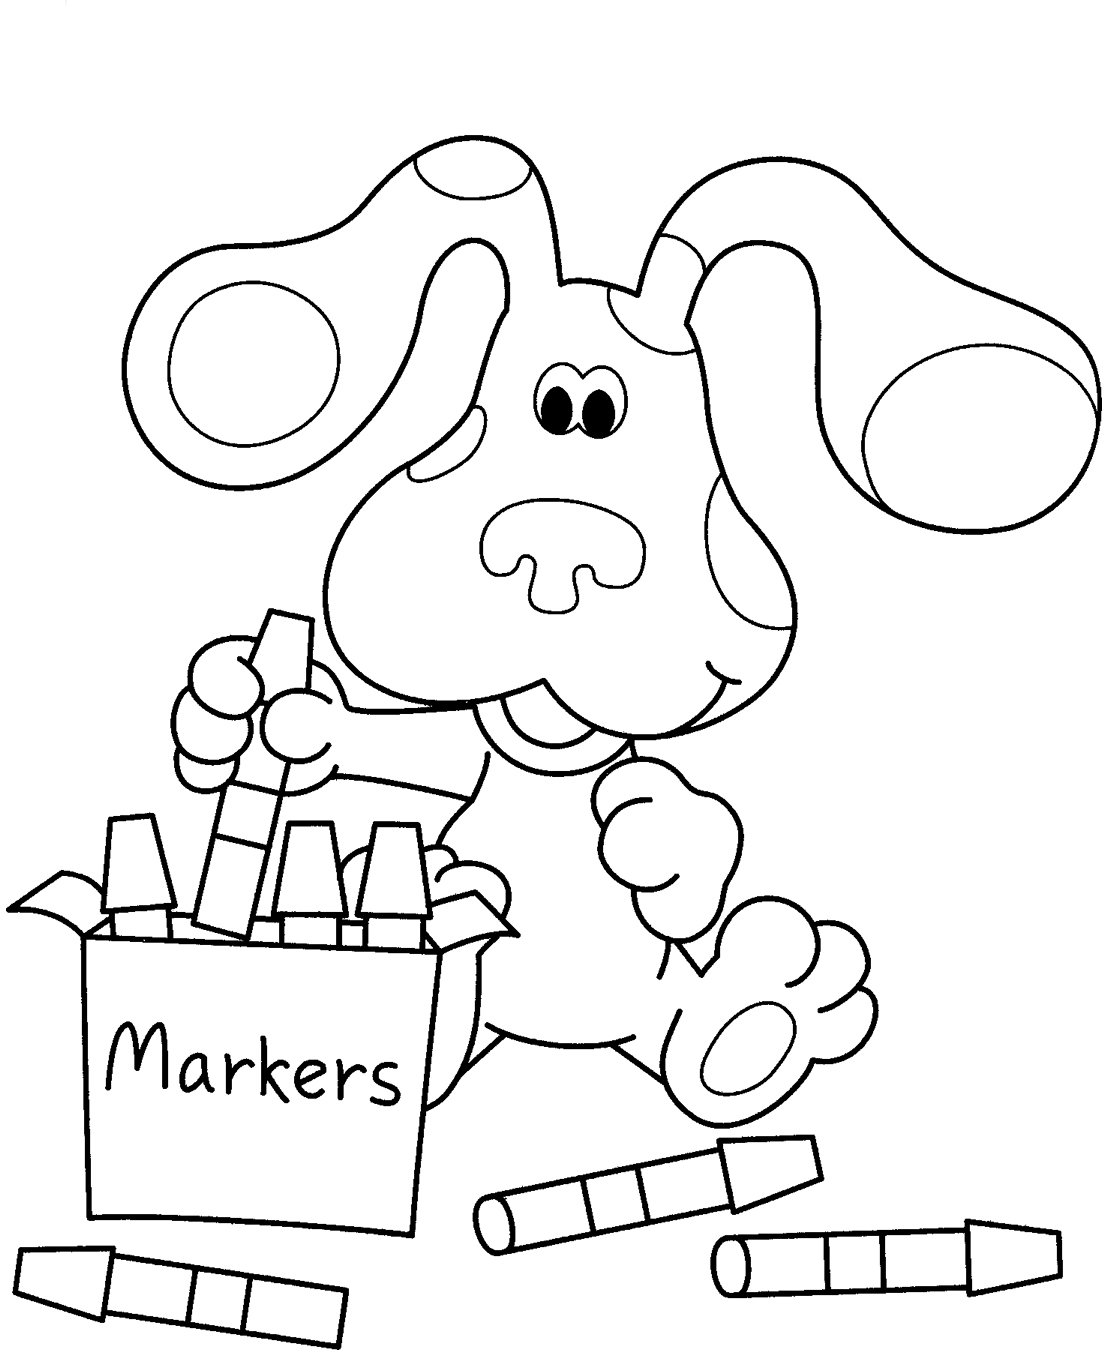 Free Printable Blues Clues Coloring Pages For Kids Coloring Pages Printable For Free